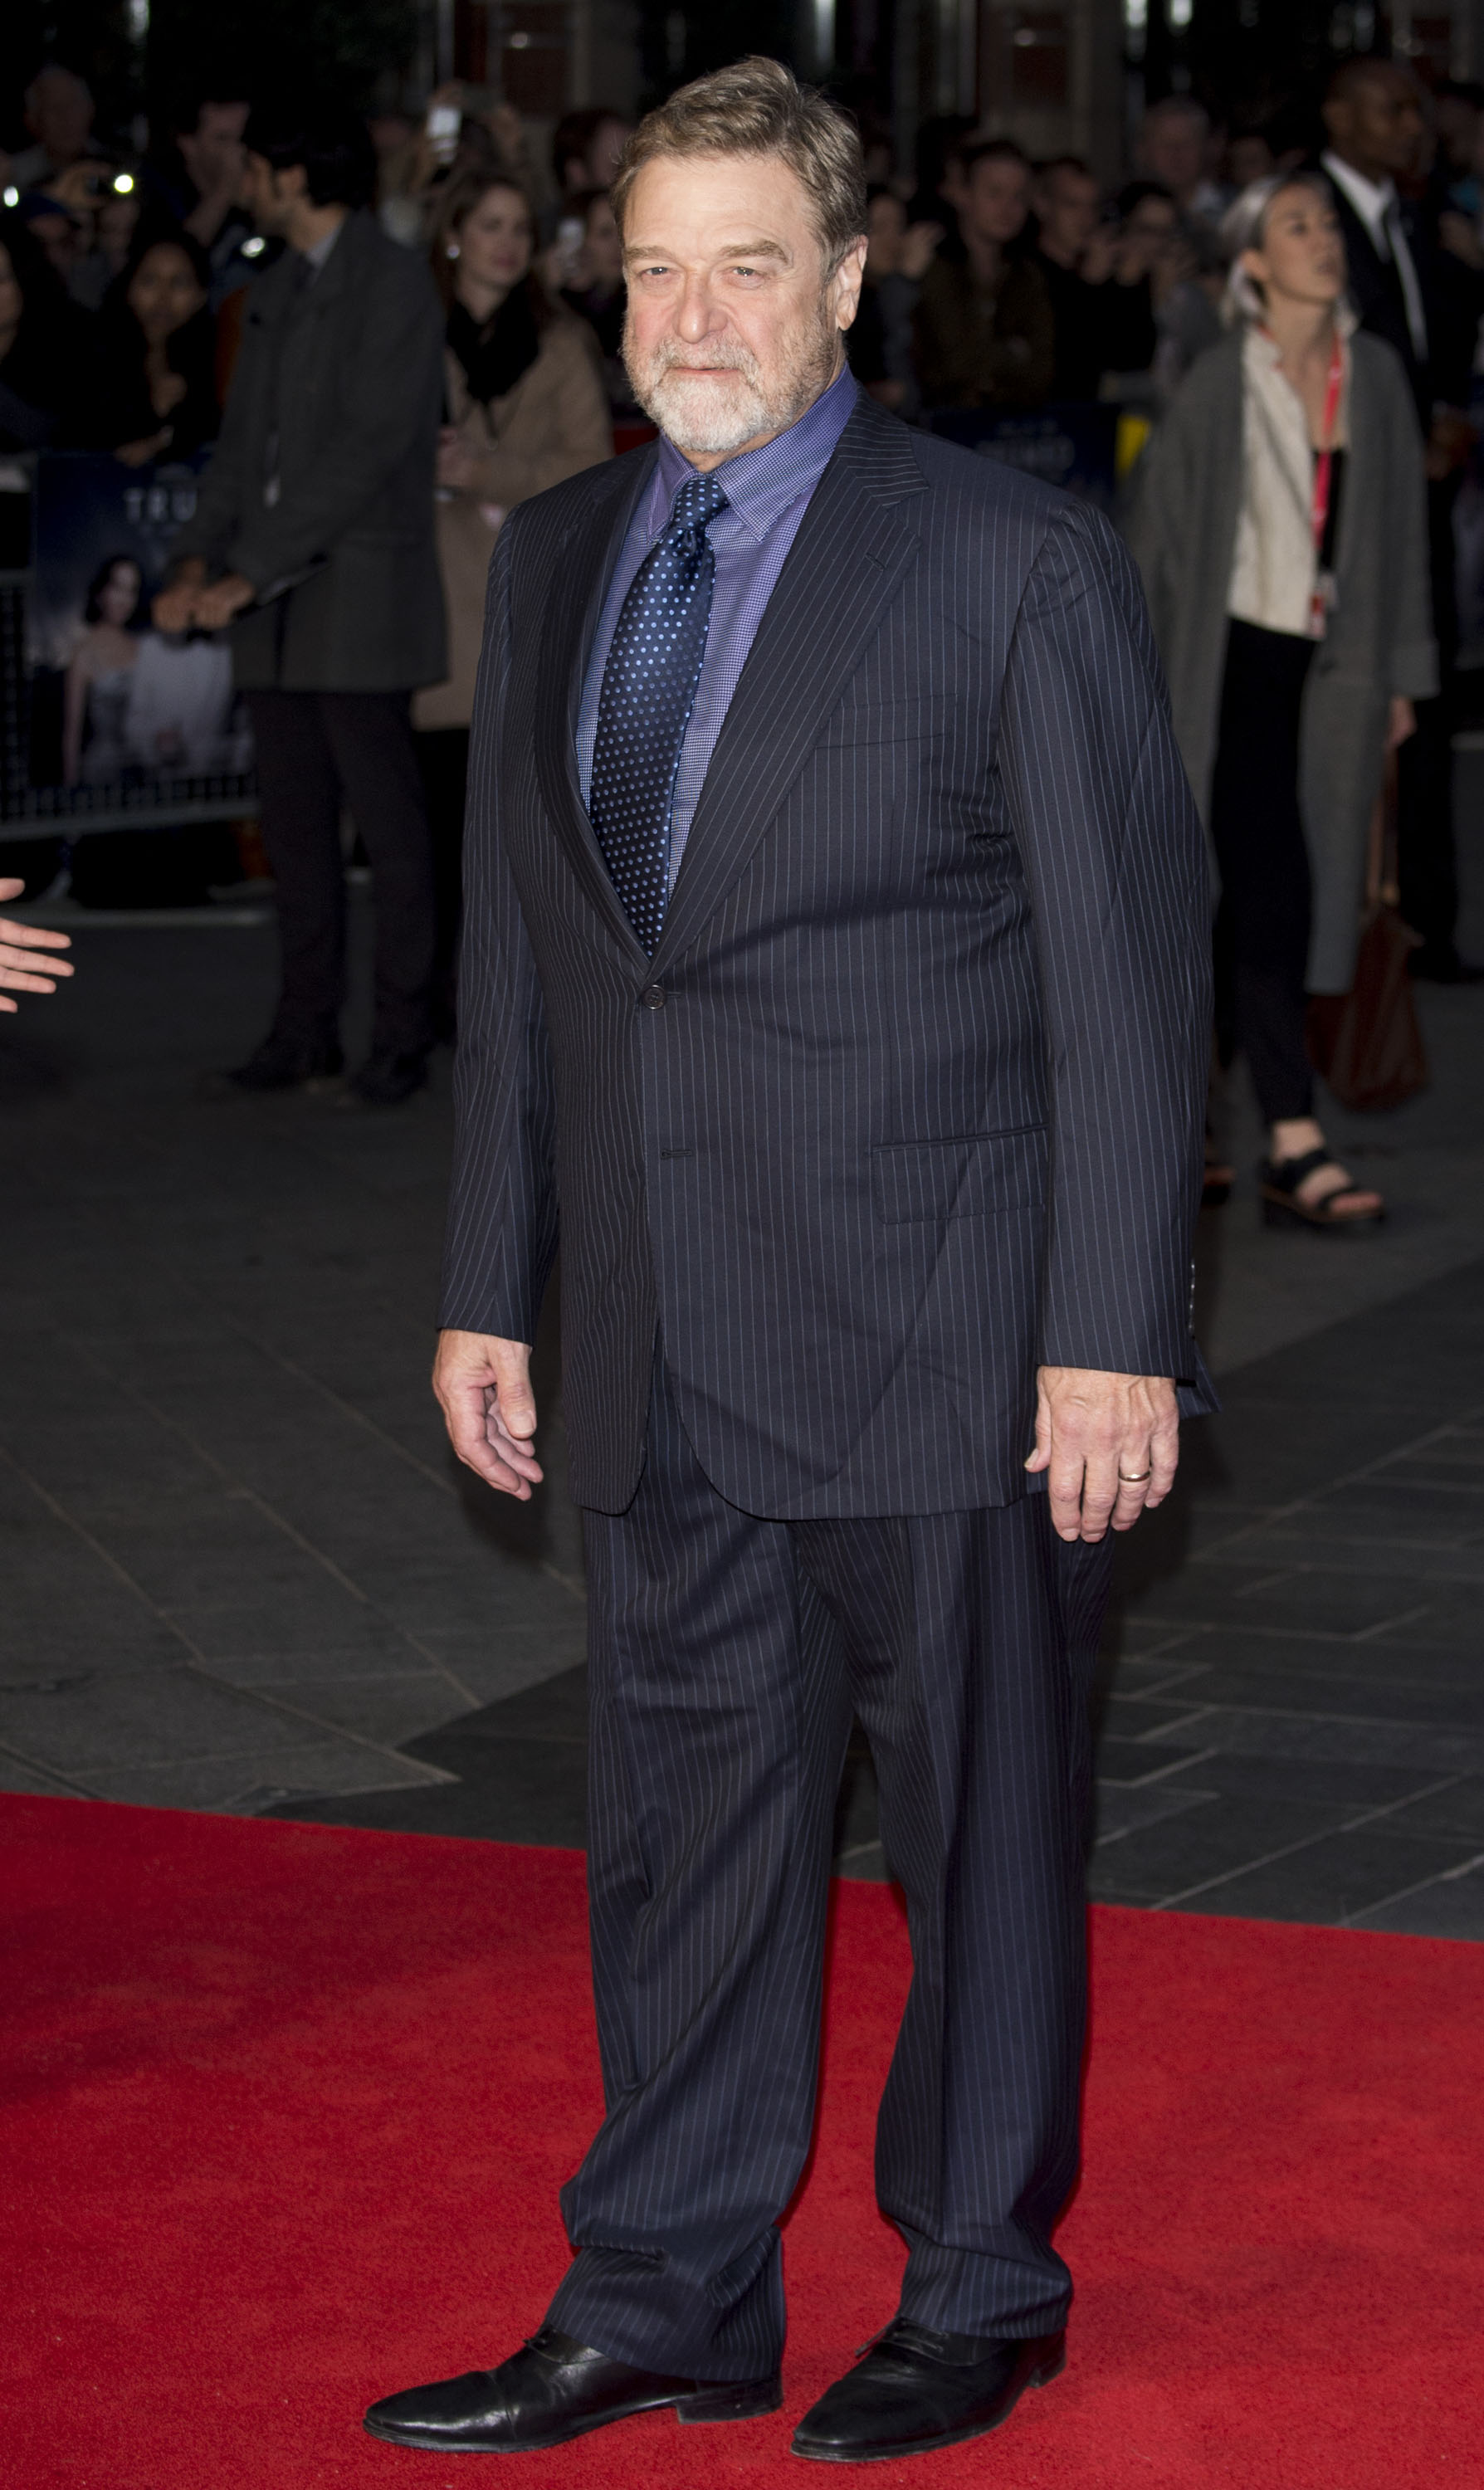 John Goodman attends the 'Trumbo' Accenture Gala during the BFI London Film Festival at Odeon Leicester Square on Oct. 8, 2015 in London.